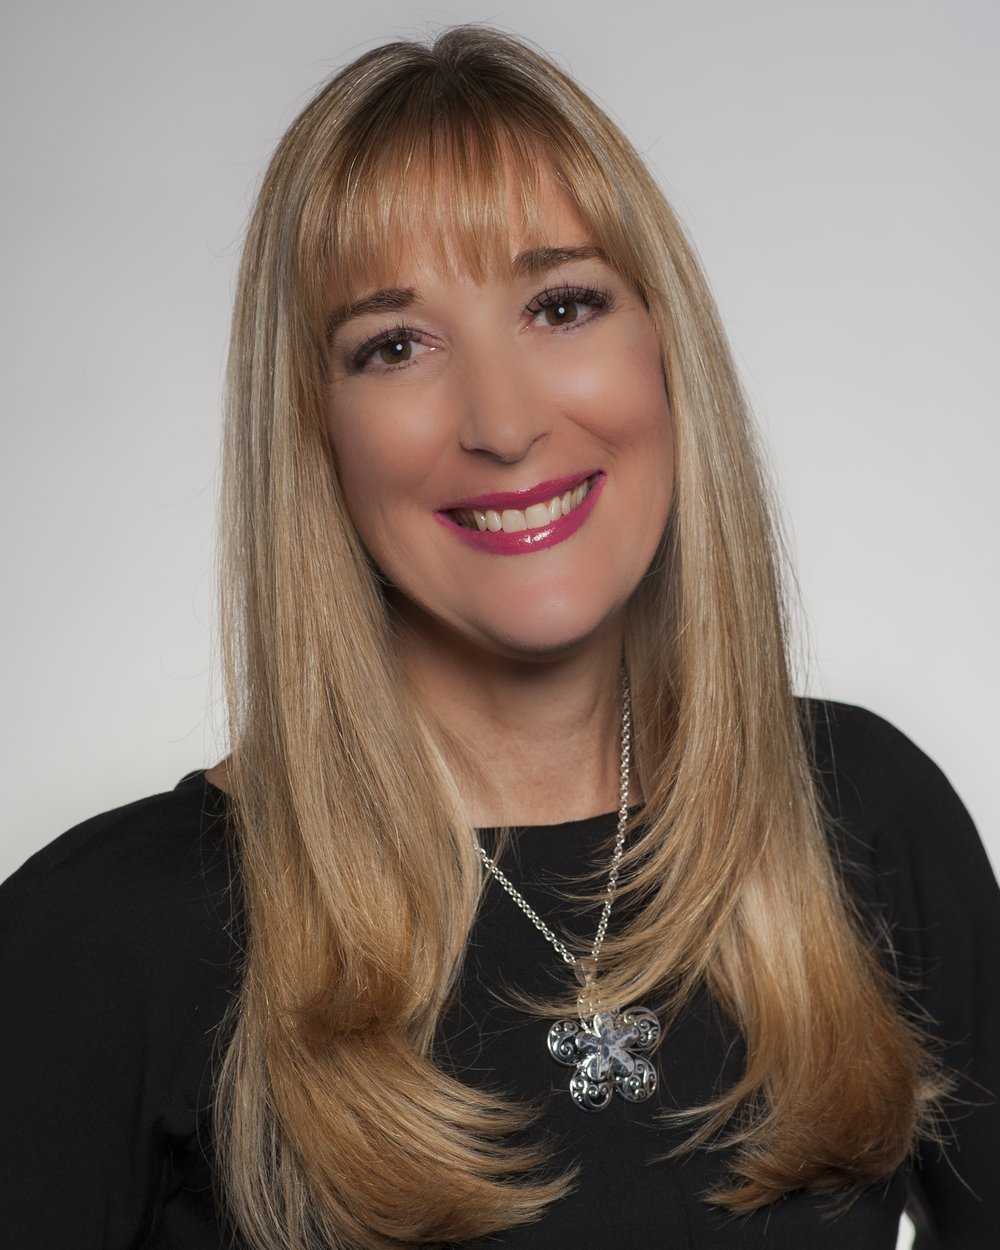 "Debbie Hoffman - Debbie Hoffman is Founder & CEO of Symmetry Blockchain Advisors, Inc. where she works with clients in their endeavors related to education, strategy and development of blockchain solutions. With her experience in financial services, law and technology innovation, Debbie brings a unique perspective in working with Symmetry's clients. Debbie was previously the Chief Legal Officer at a financial services company where, in addition to overseeing all legal and compliance matters, she was an integral part of the executive team in the strategy and implementation of client solutions. She spent a decade of her career as a real estate finance attorney at the law firm of Thacher Proffitt & Wood in New York. Debbie has also been a professor at the Florida A&M University College of Law and the University of Central Florida. In 2018 Debbie was named as a NAWRB Roaring Thirty Winner and named as ""The Visonary."""